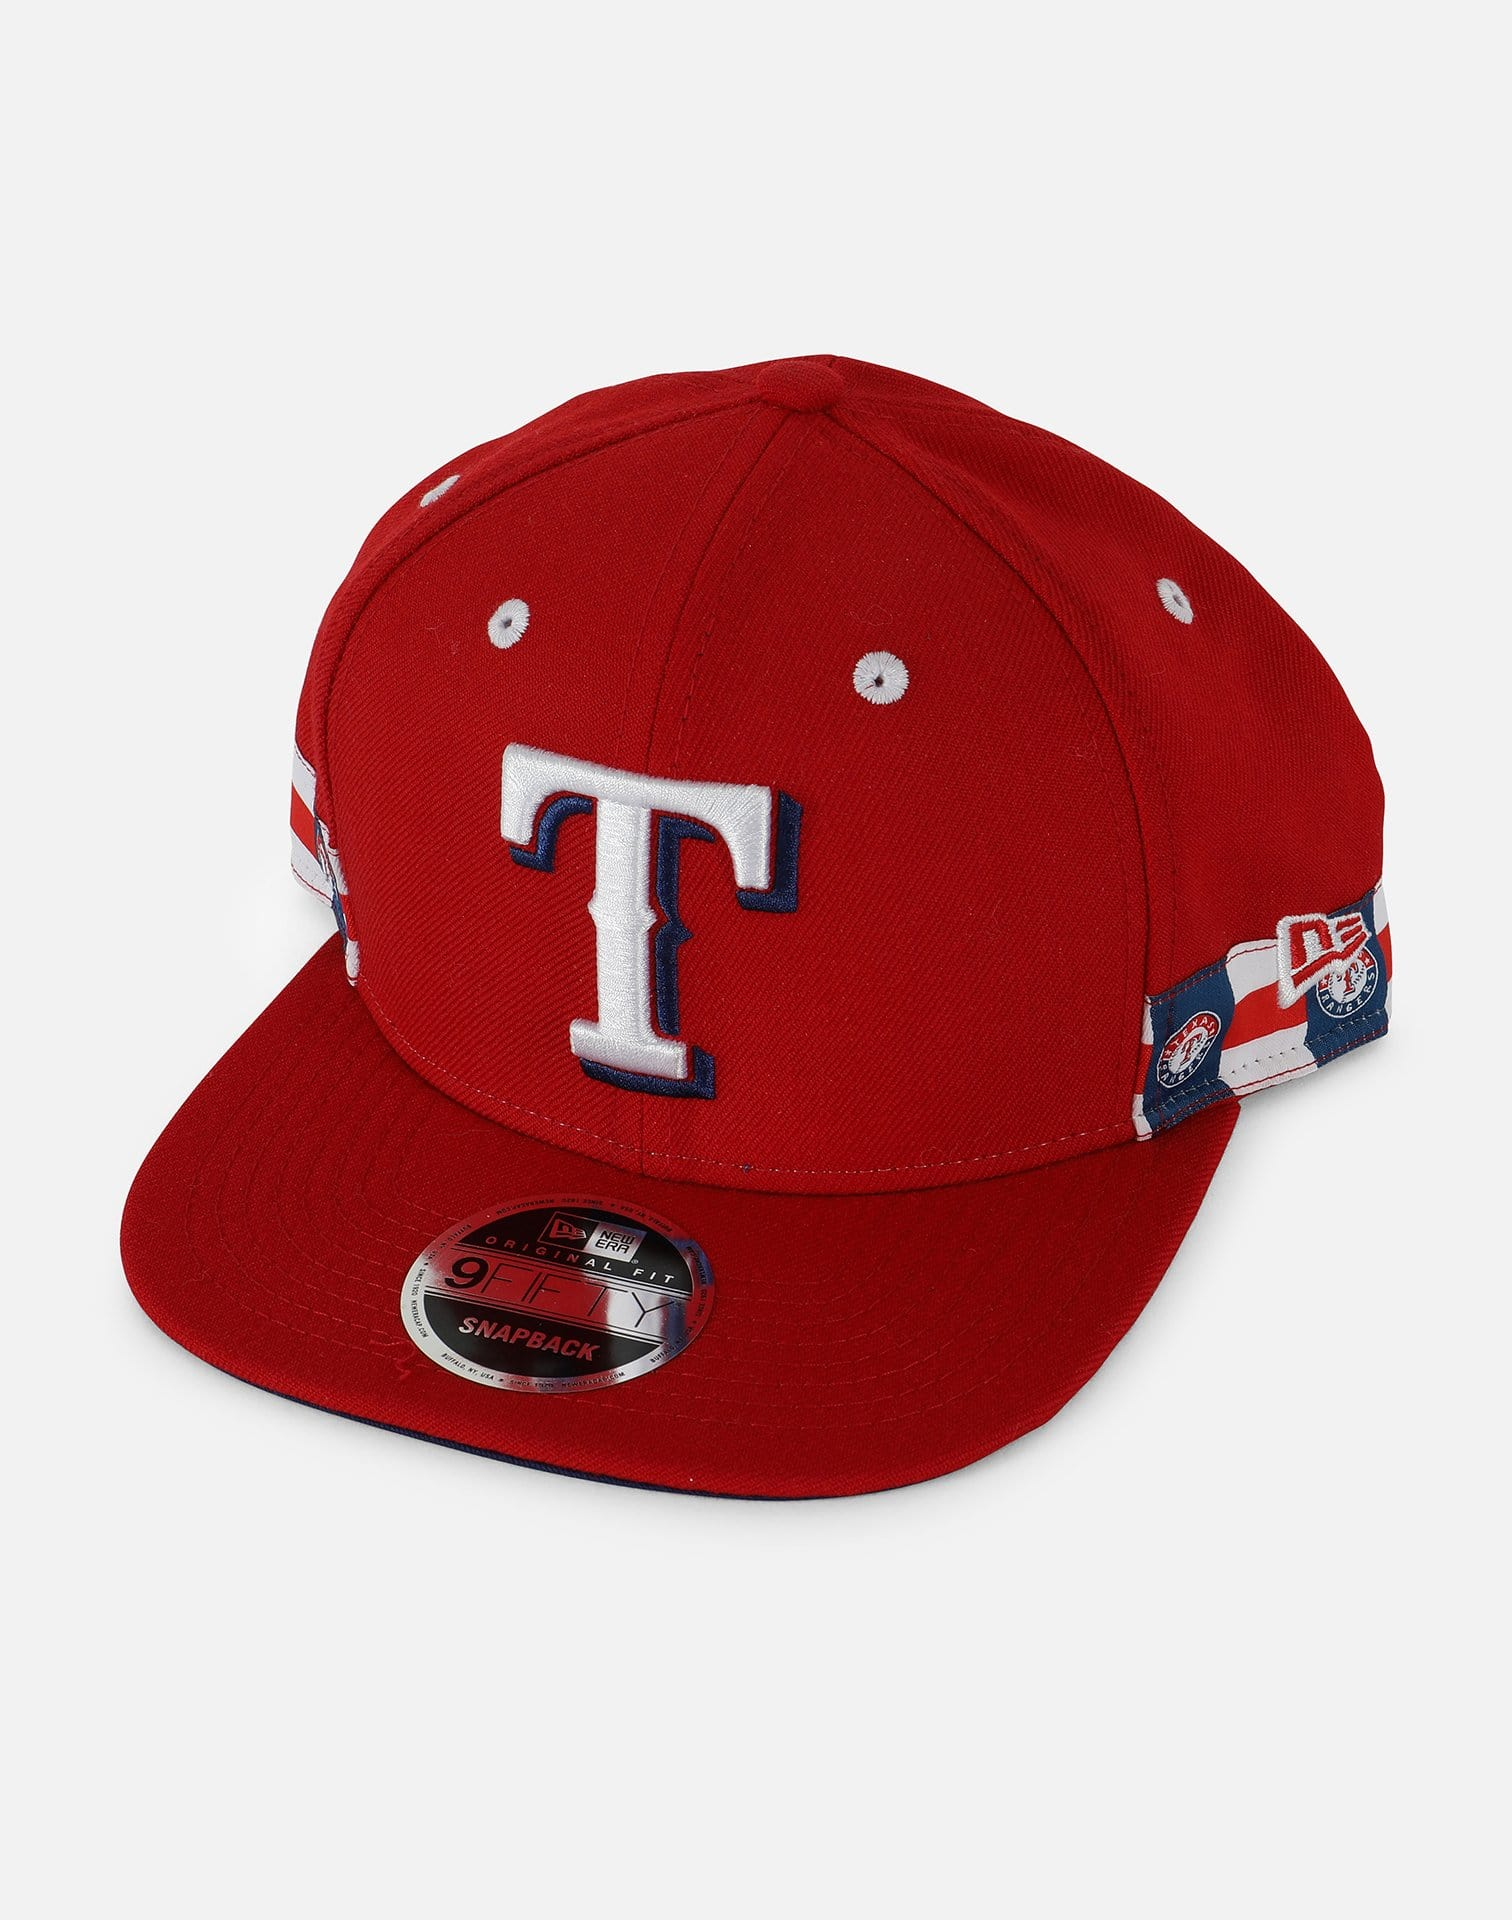 New Era MLB Texas Rangers 018 Snapback Hat